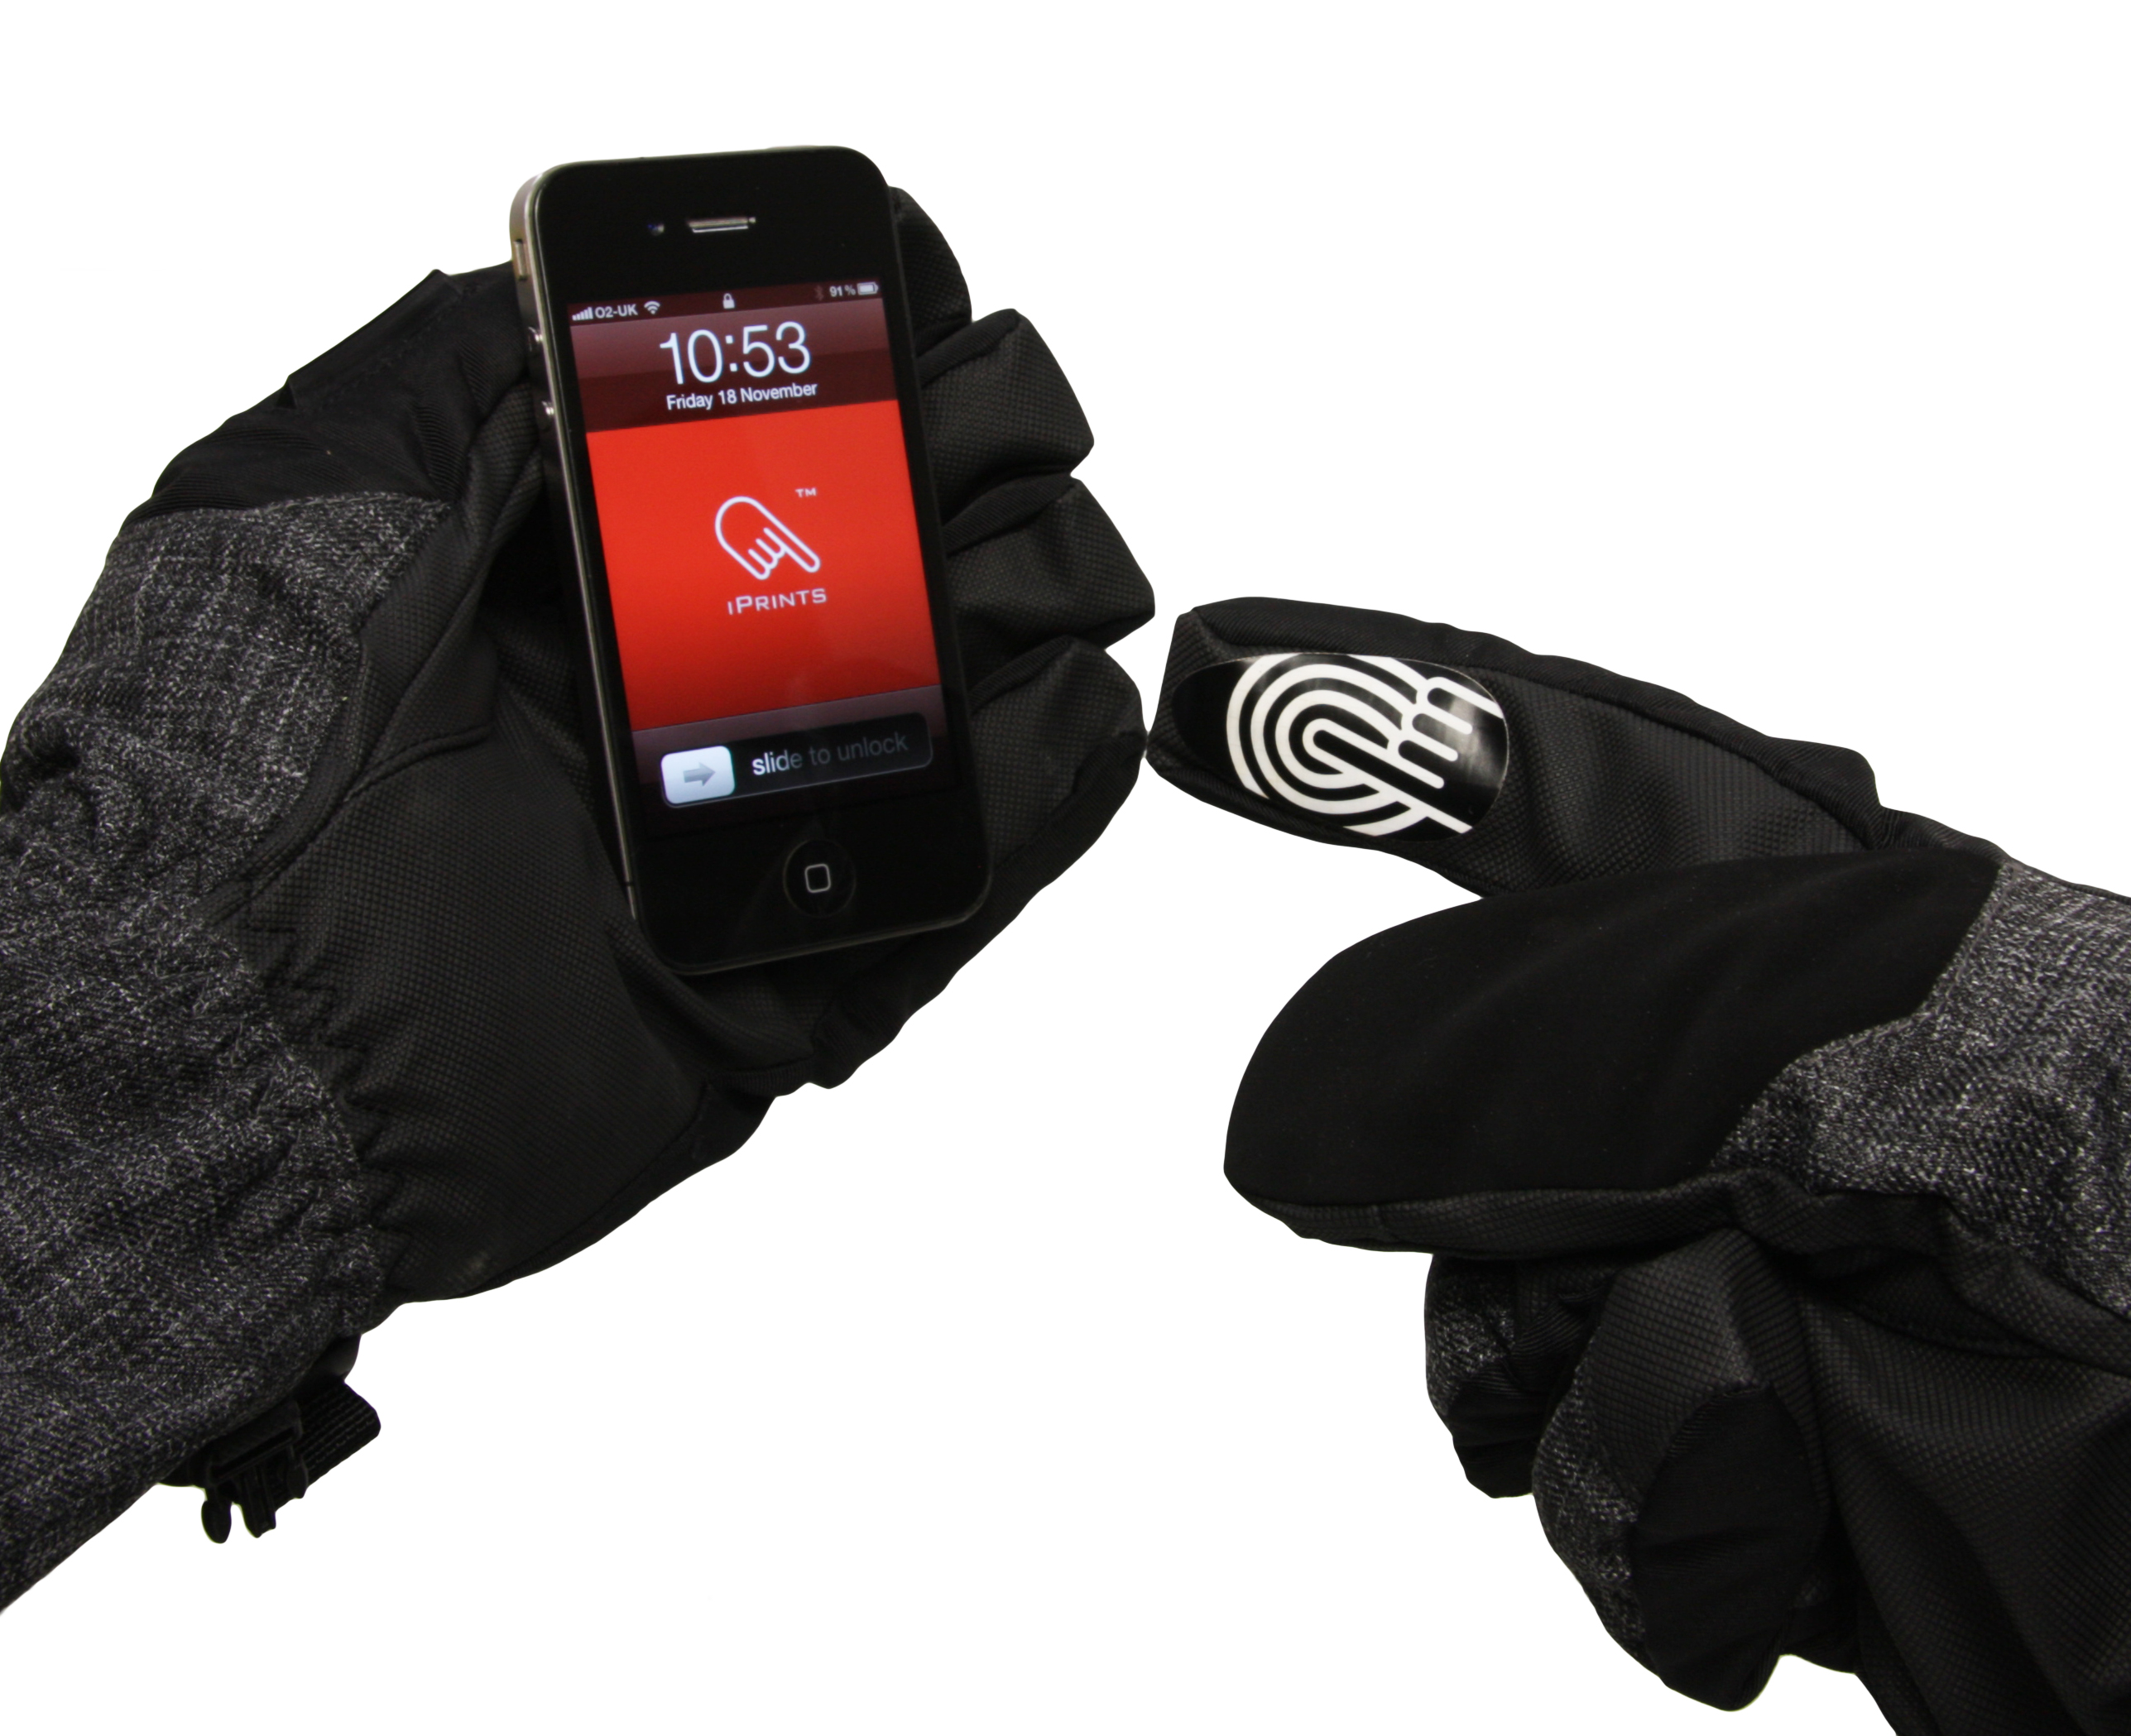 iPrints stickers let us operate touch screens while wearing ski gloves